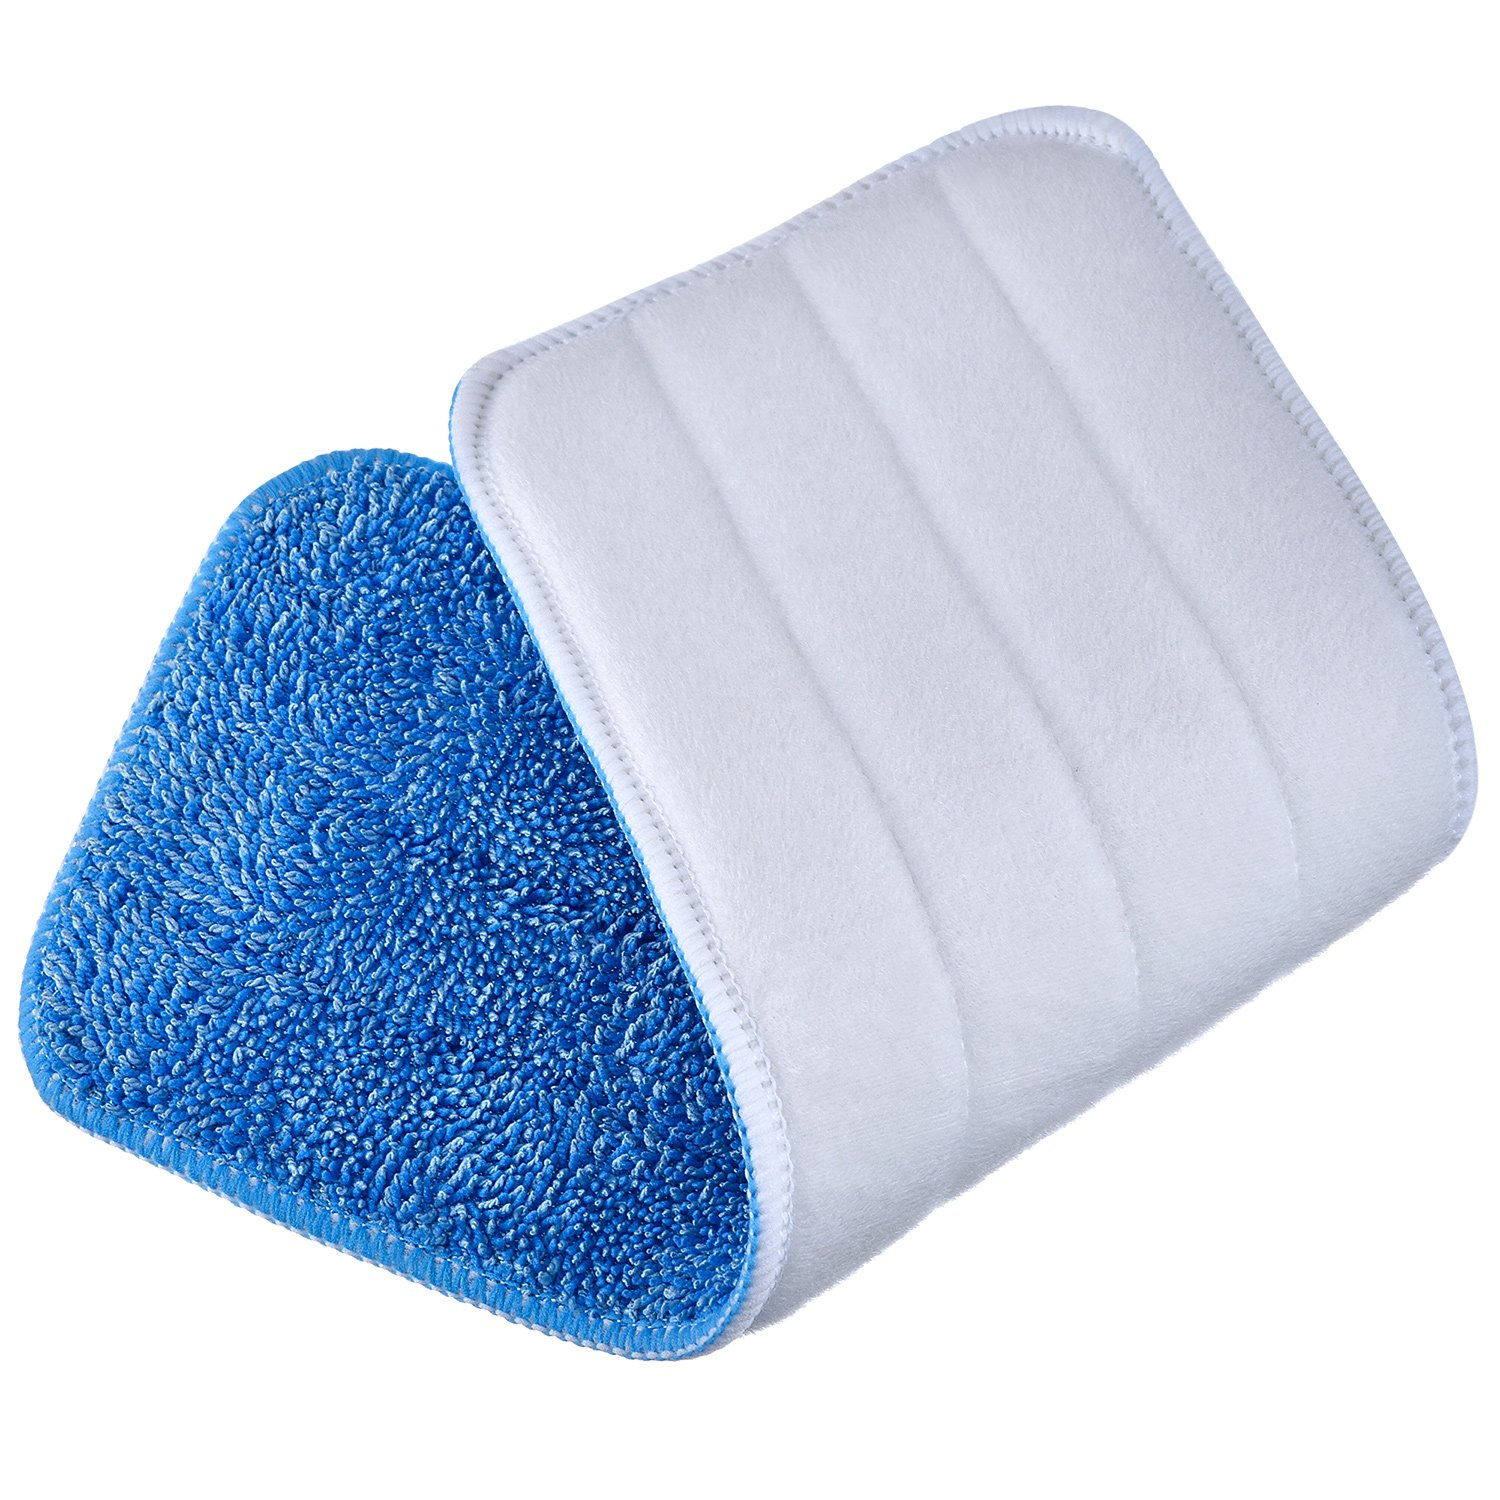 TecUnite 6 Pieces Microfiber Cleaning Pads Reveal Mop 16 to 18 inch Fit for Most Spray Mops and Reveal Mops Washable (16.5 x 5.5 inch) by TecUnite (Image #4)